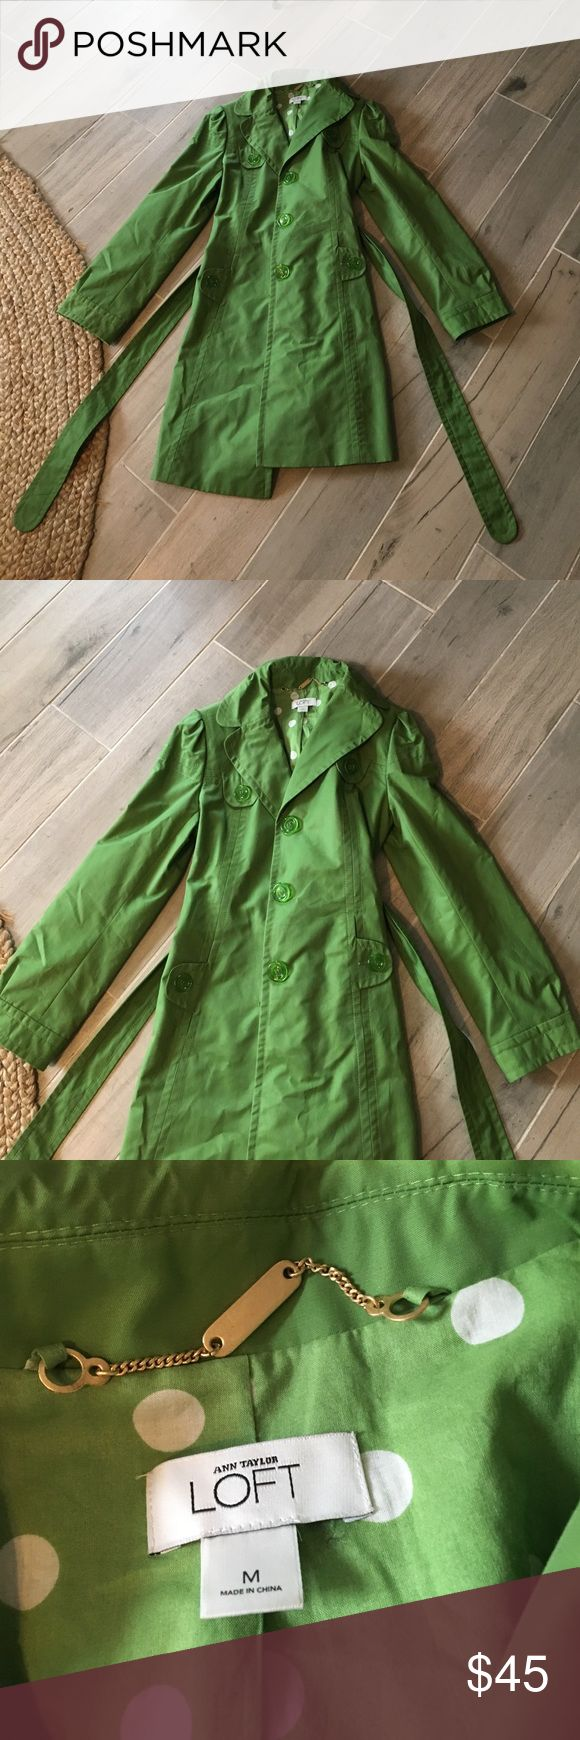 GREEN TRENCH COAT Looks in great condition LOFT Jackets & Coats Trench Coats